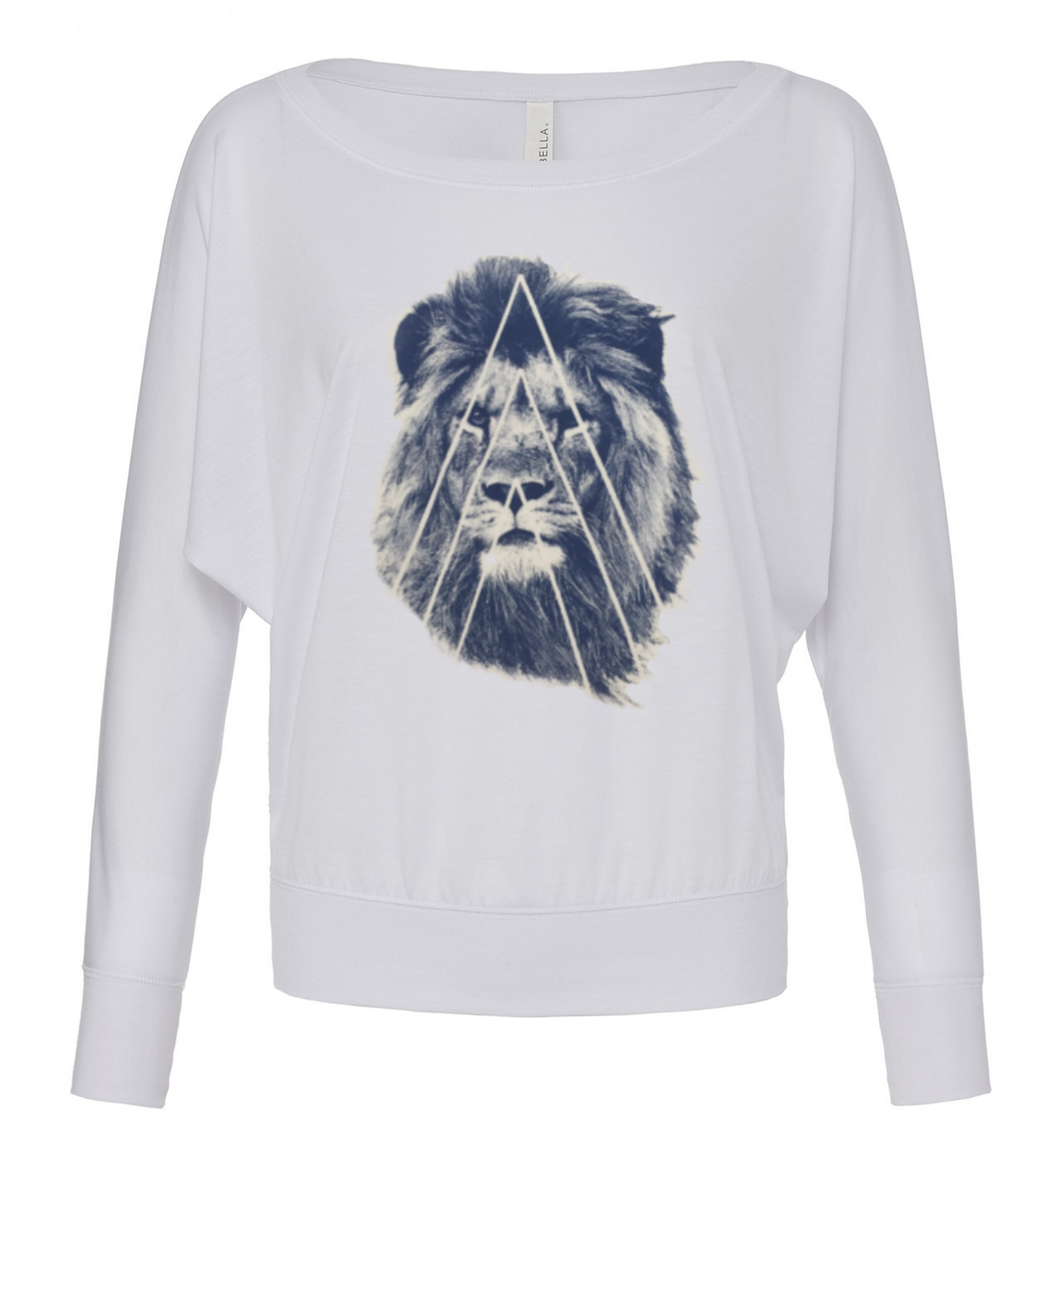 Navy Street Lion Sweater - BY DEFINITION